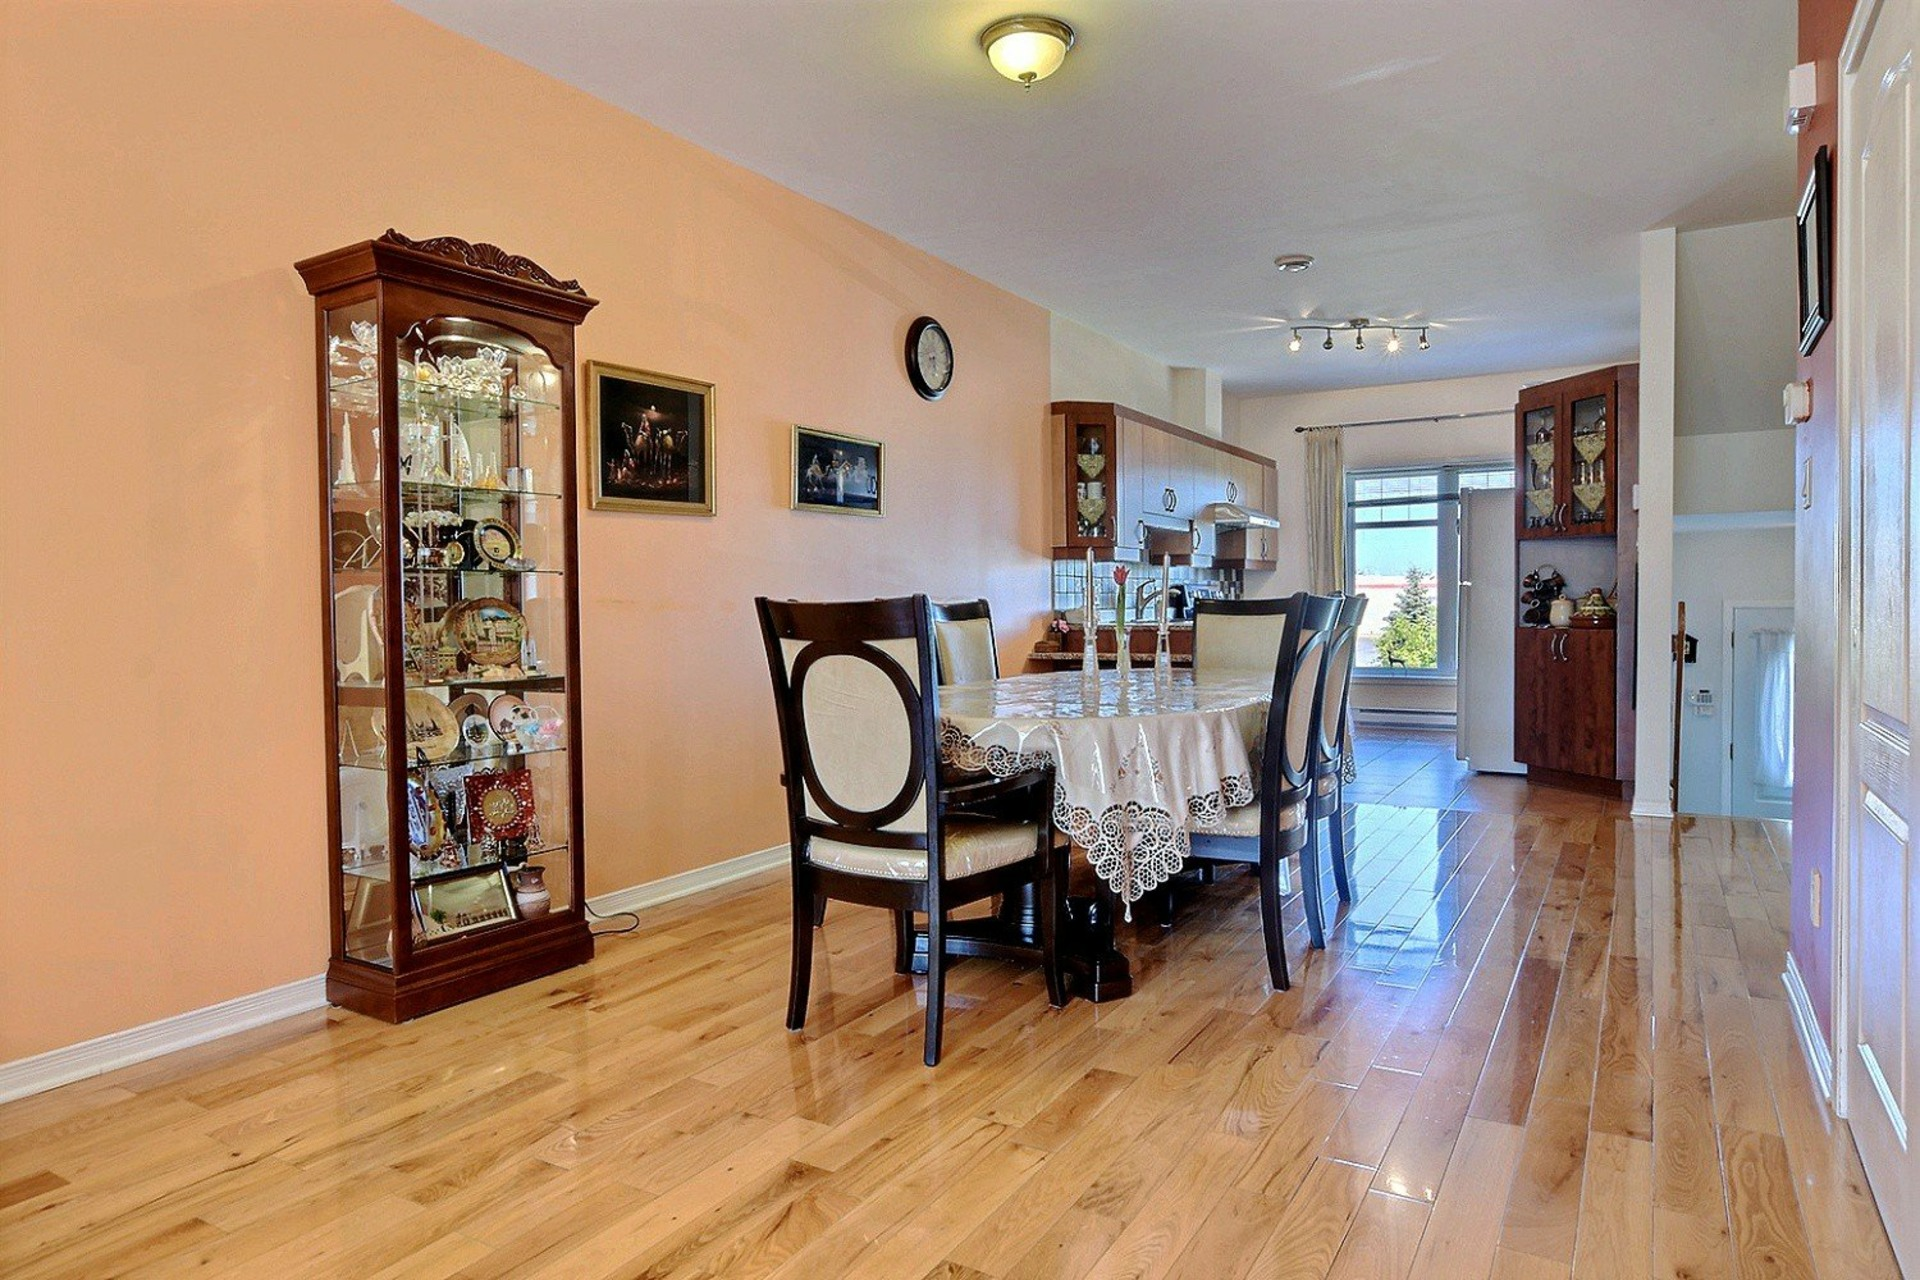 image 5 - House For sale Brossard - 6 rooms